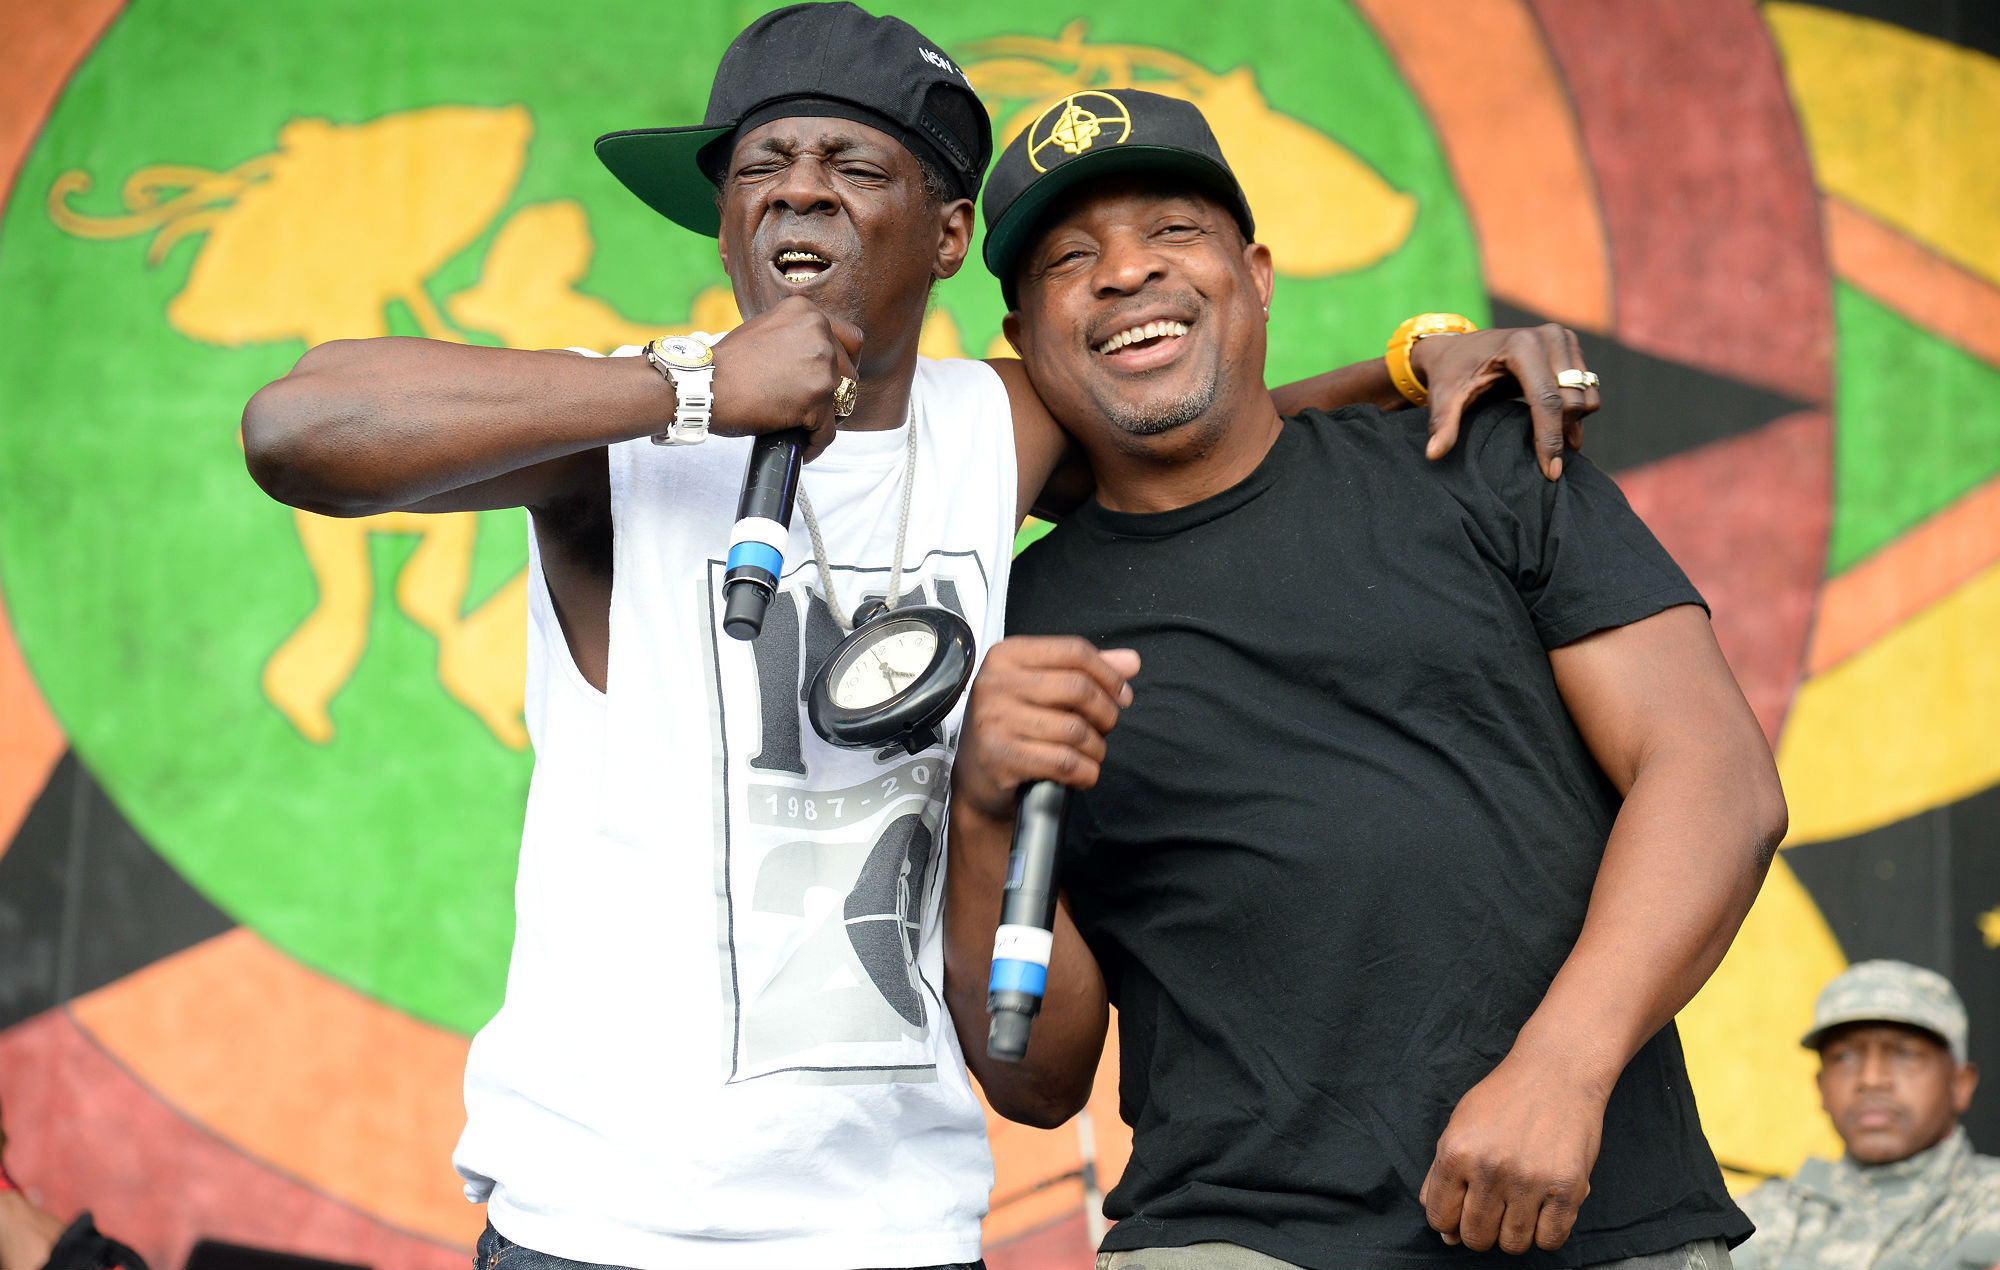 Chuck D and Flavor Flav of Public Enemy (Photo by Jeff Kravitz/FilmMagic)